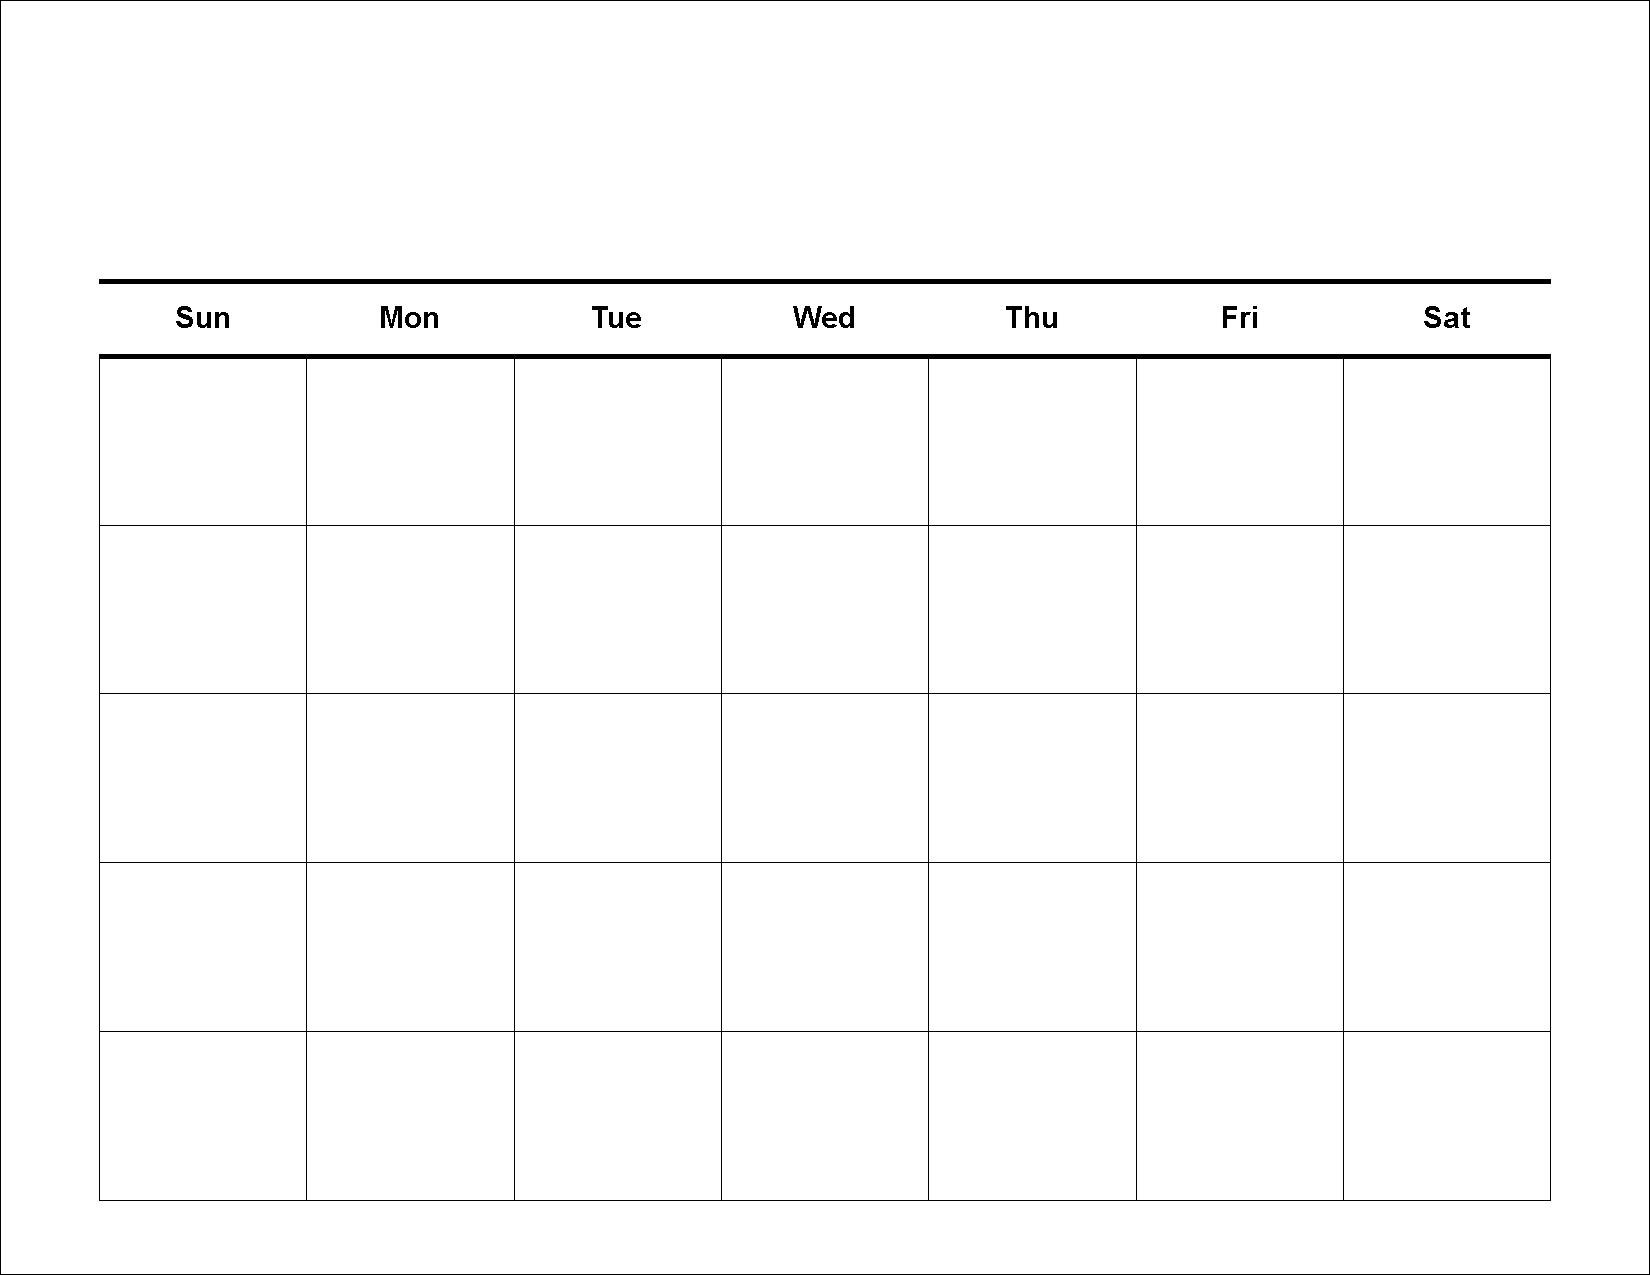 30-Day-Calendar-Template-Printable-Large intended for Fill In Calendar Templates